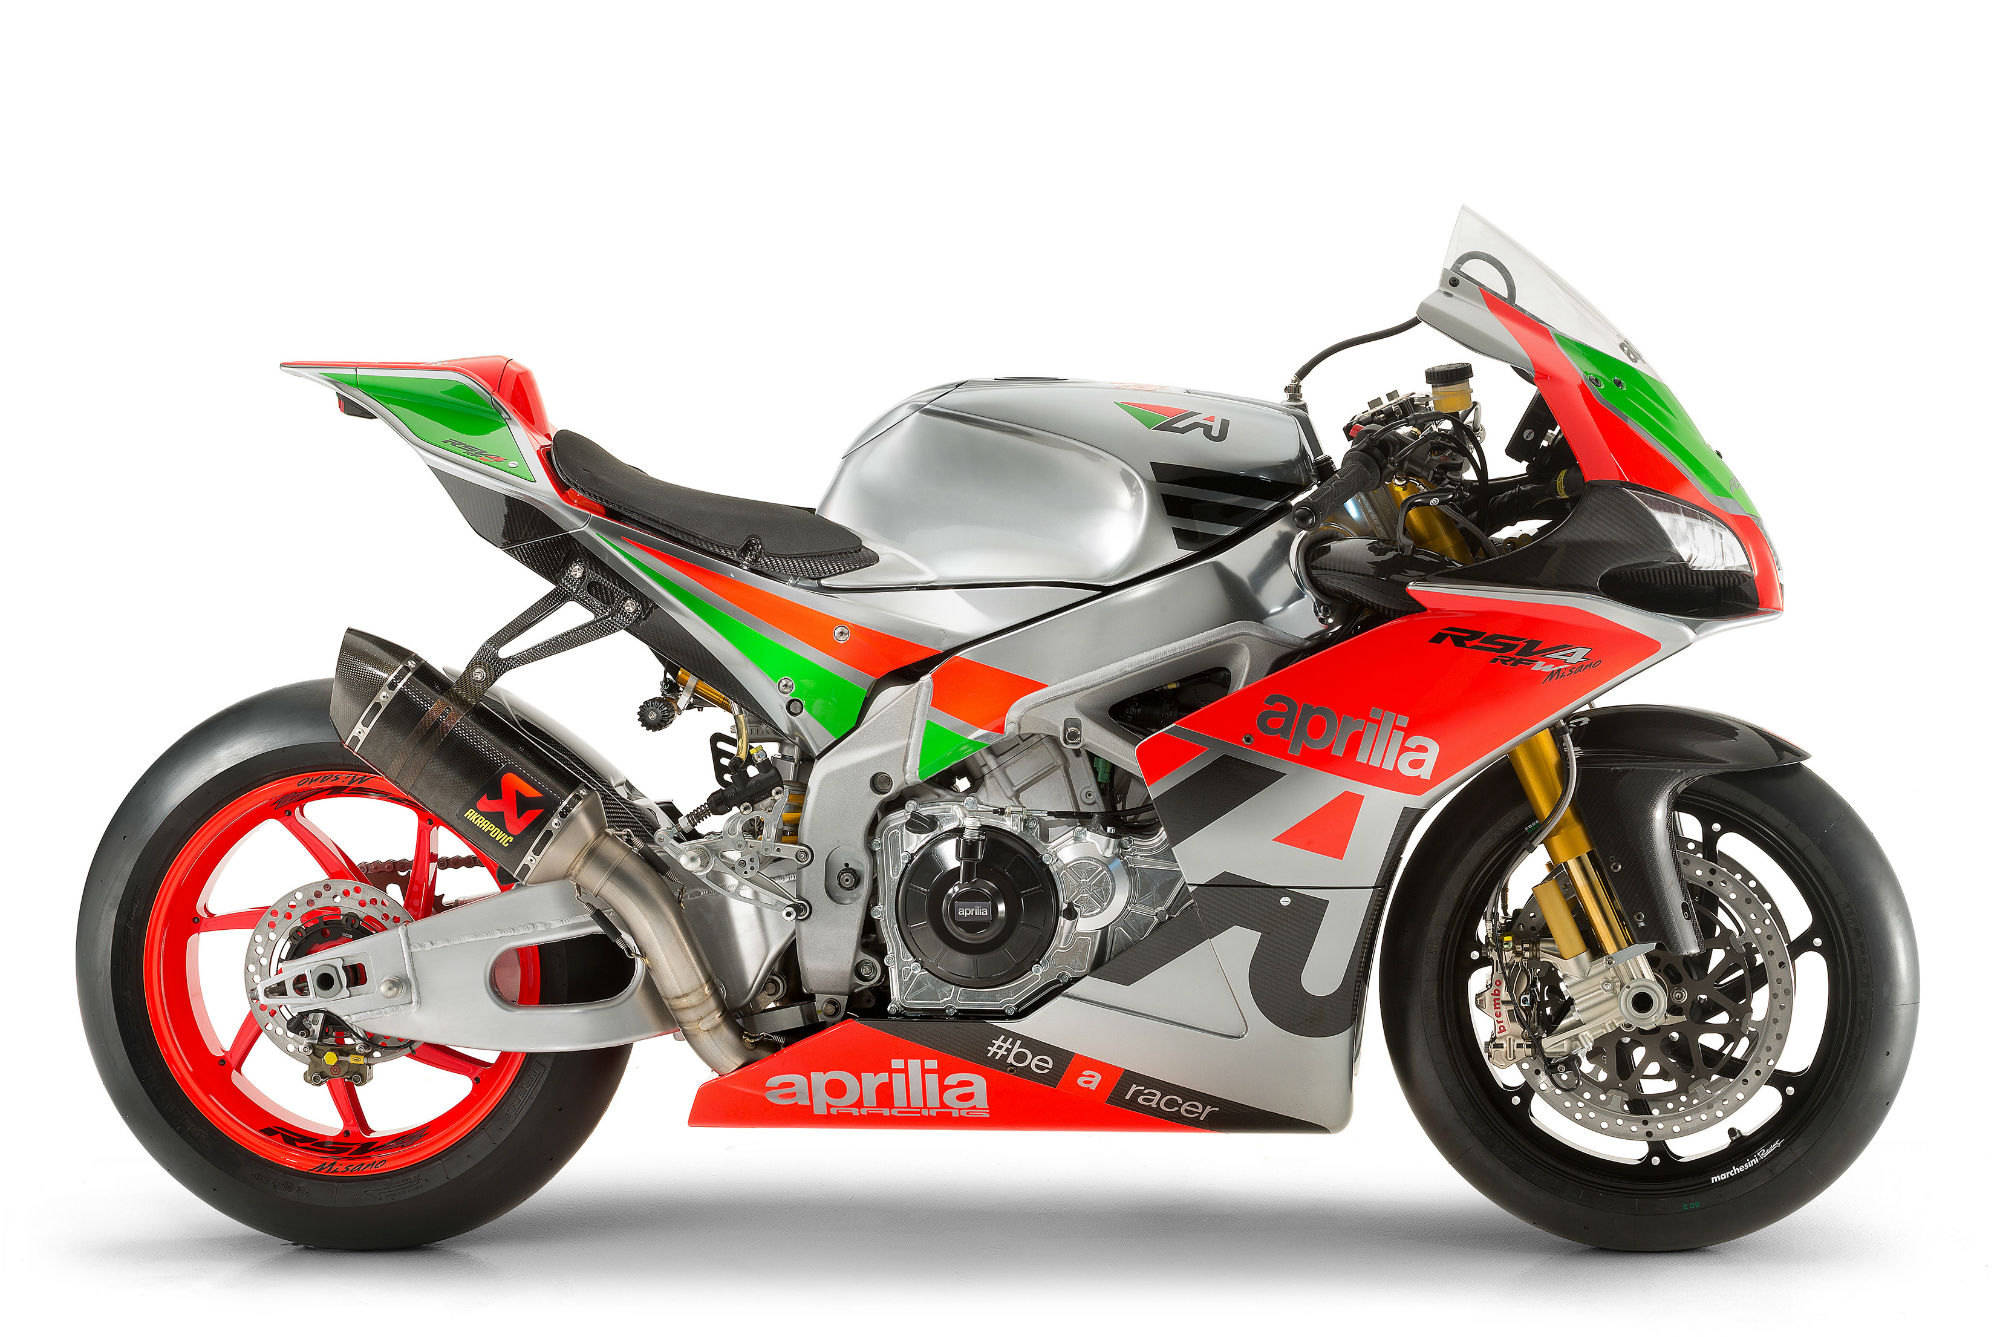 Aprilia updates the RSV4 and introduces a 'Factory Works' version, the RSV4 R-FW